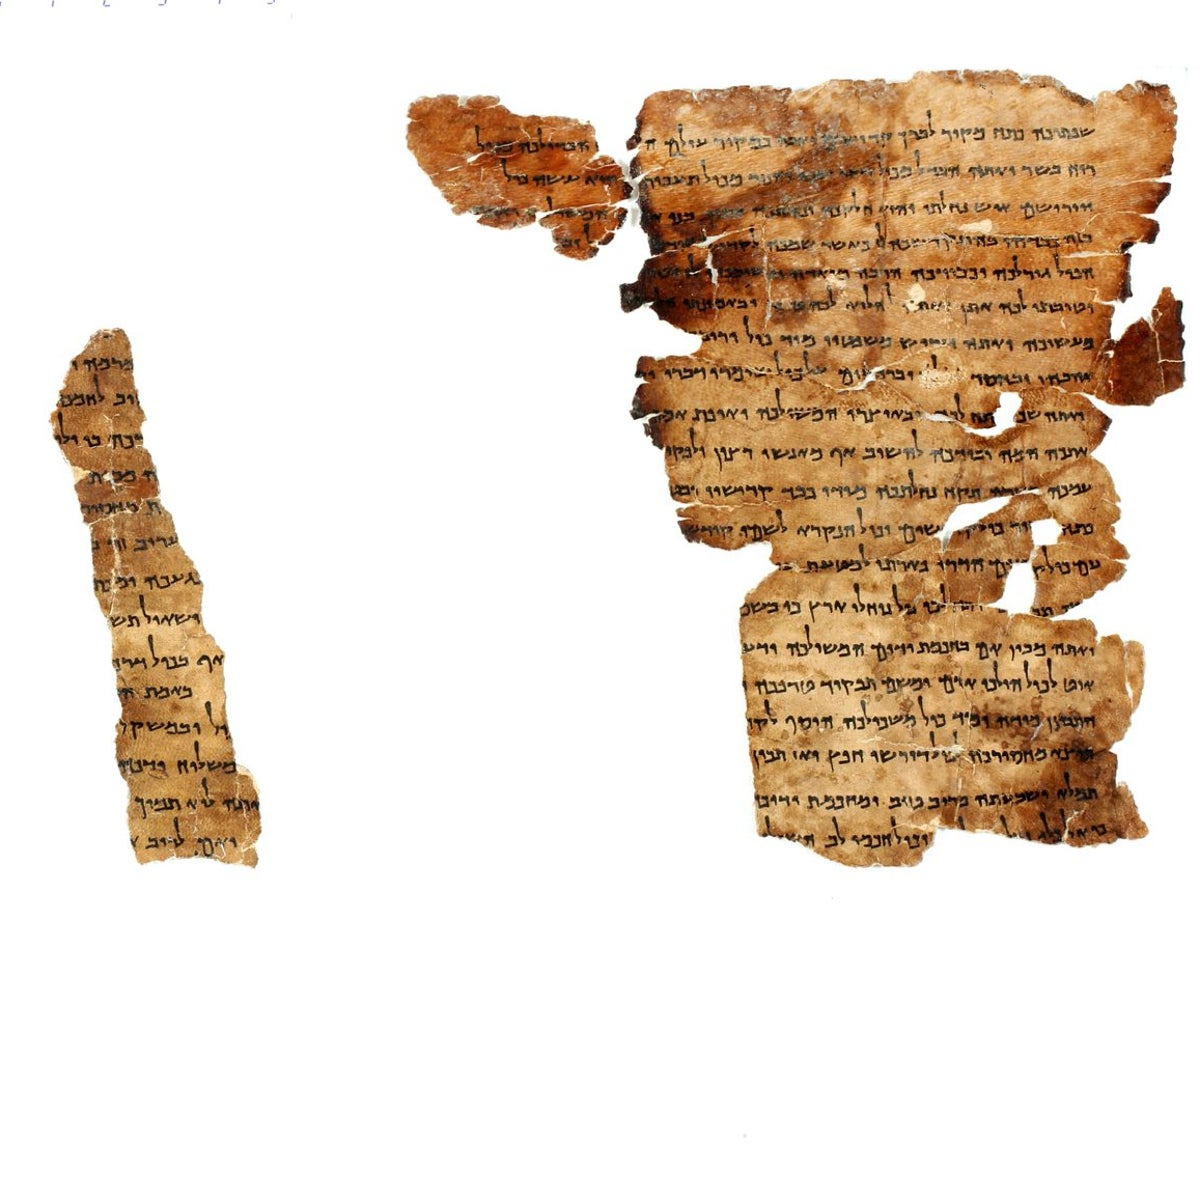 Fragments of Musar LeMevin, with raz nihyeh: Lectures on morality for learned disciples, as conveyed by God himself to the sages. Picture shows four pieces of Dead Sea Scroll going on display in Denver for the first time.